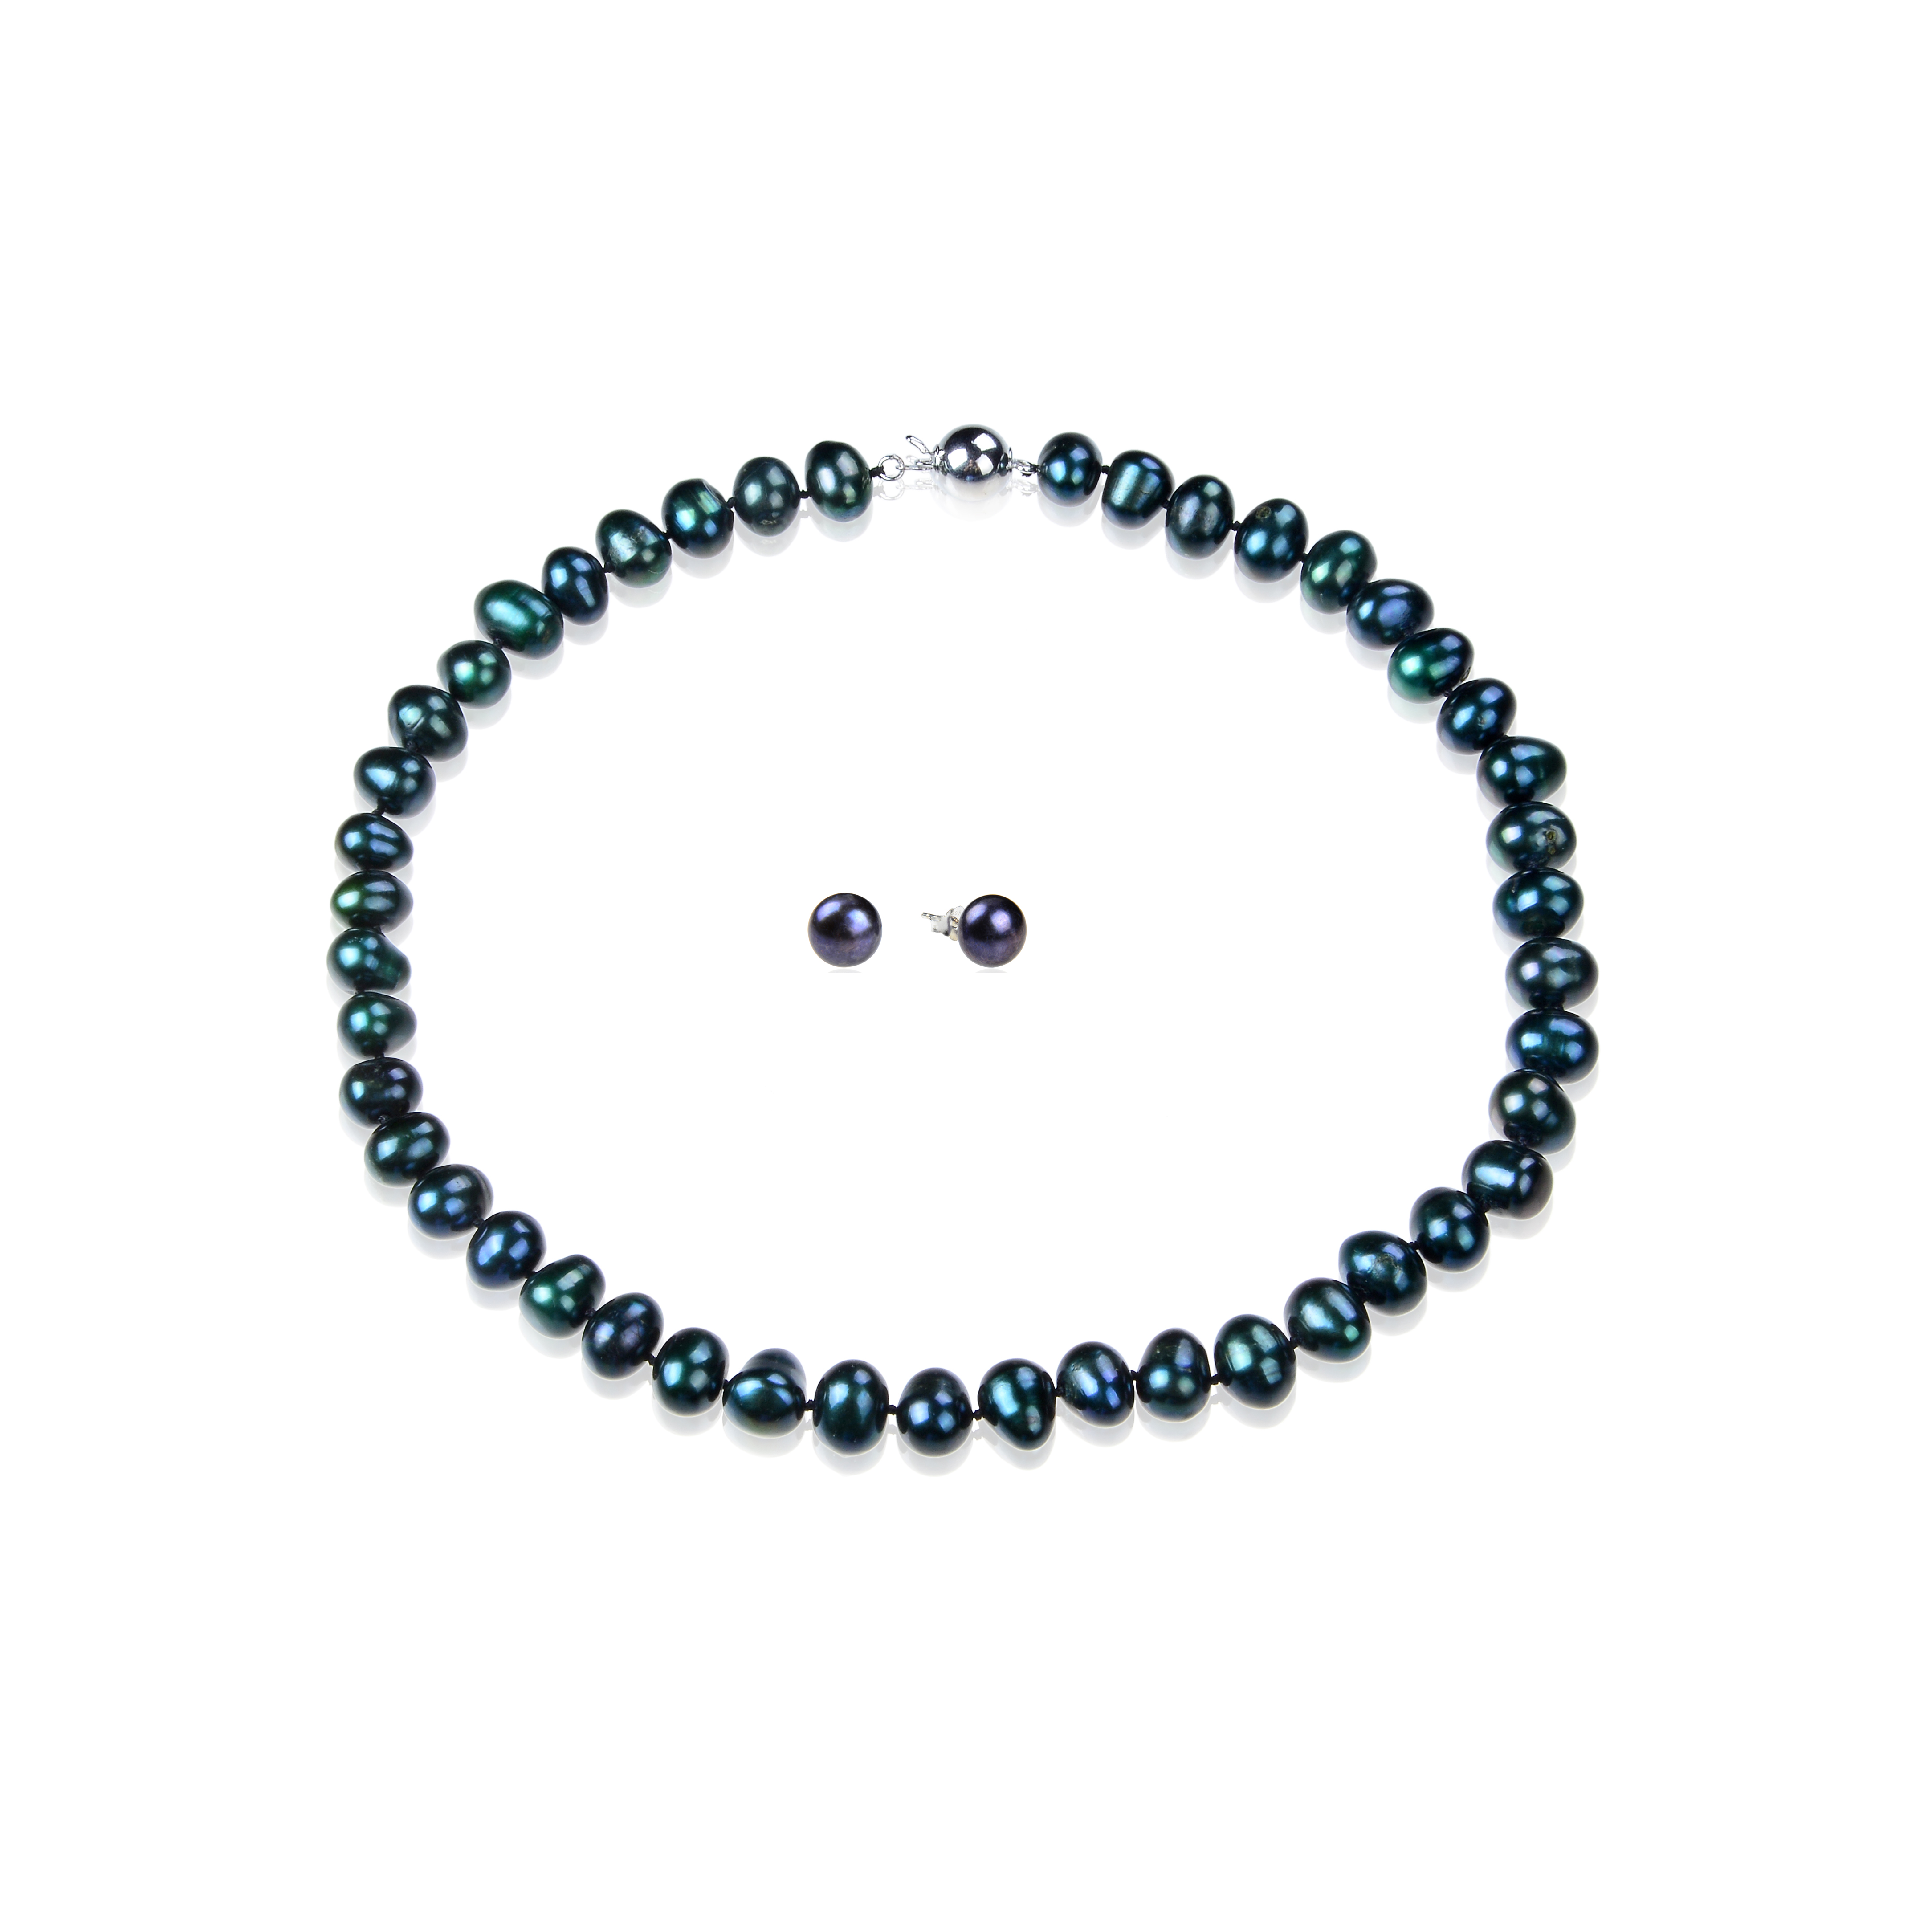 10mm Peacock Blue Overtone Black Freshwater Pearl Necklace Earring Set -ne15